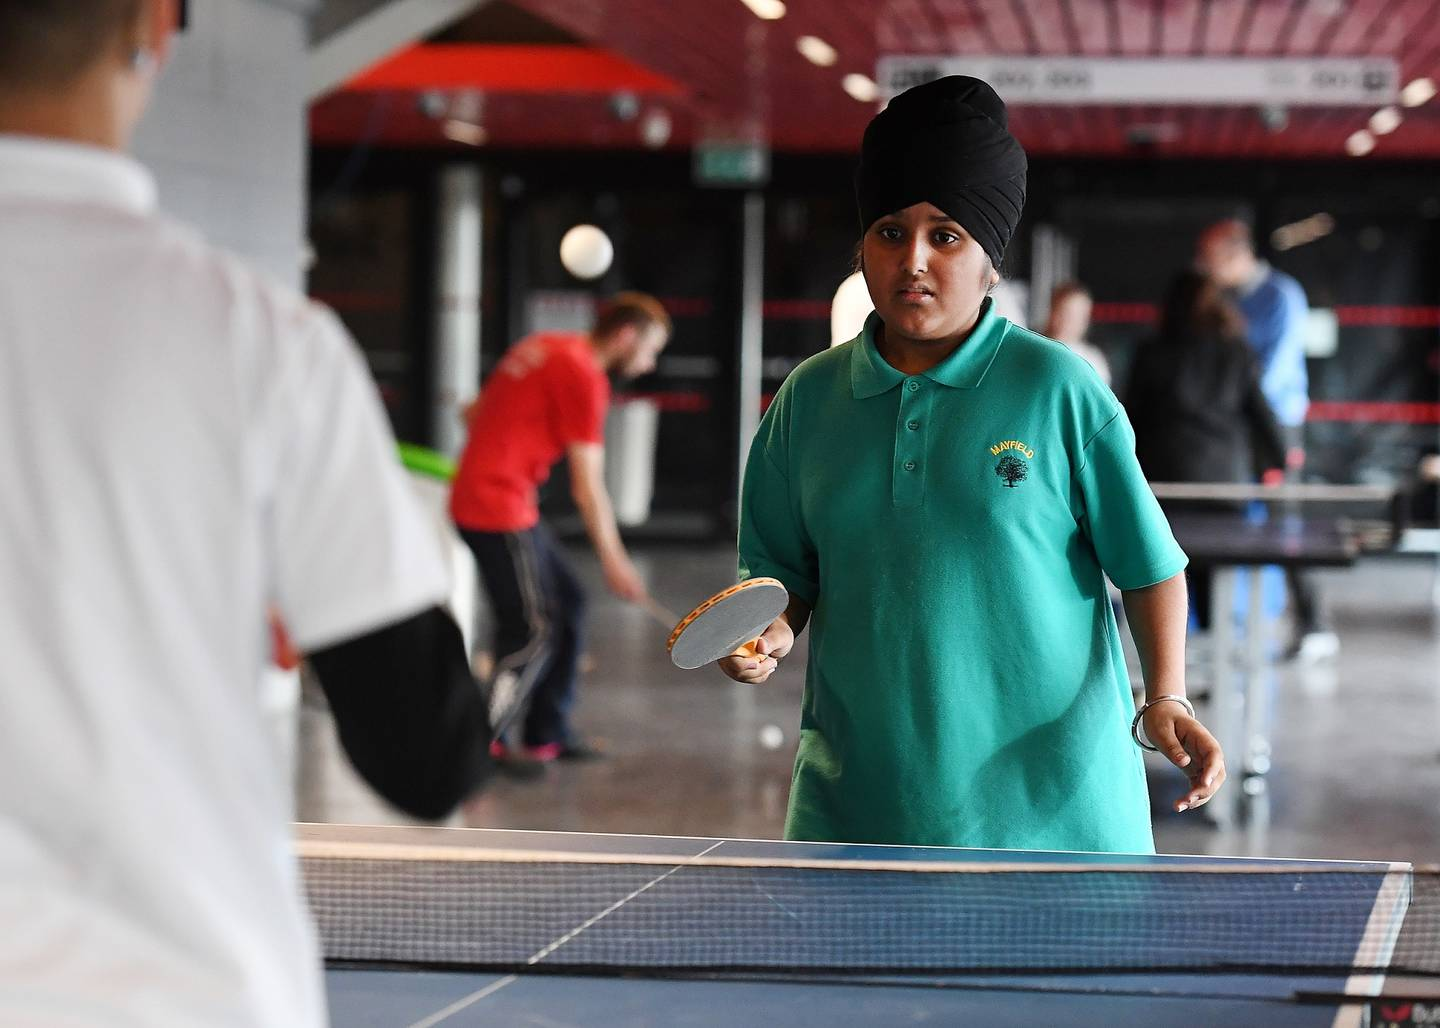 Boy plays table tennis at school event